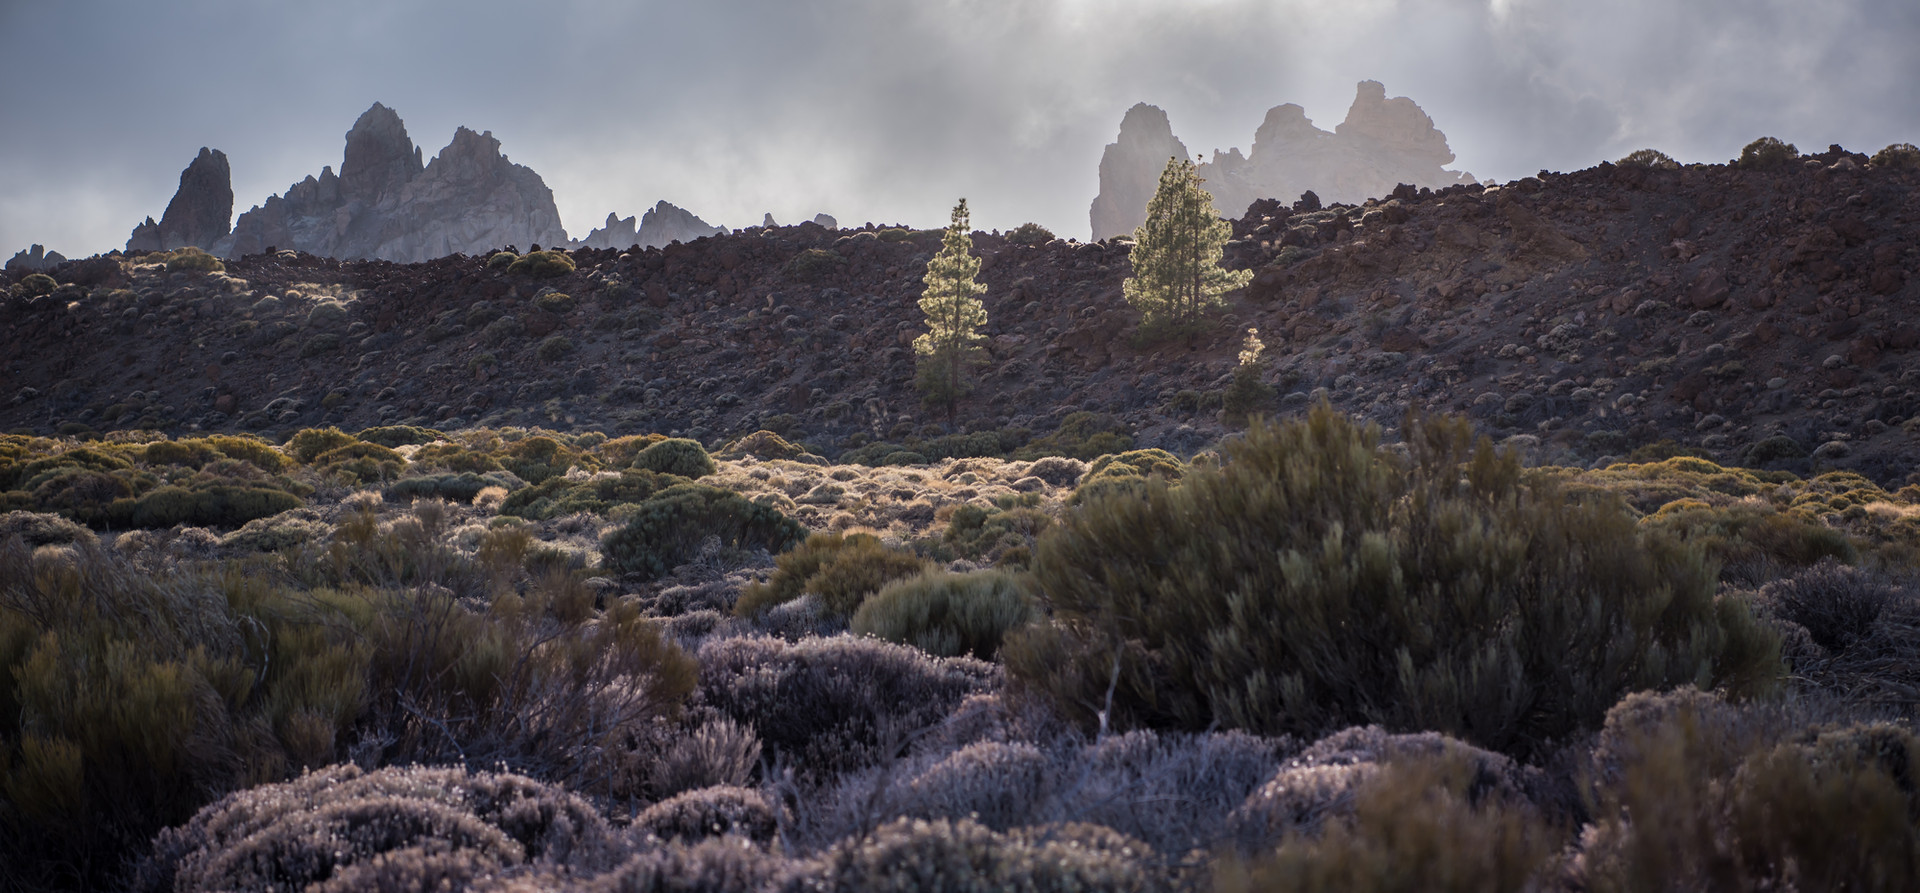 Los Roques de Garcia in the mist of the clouds.